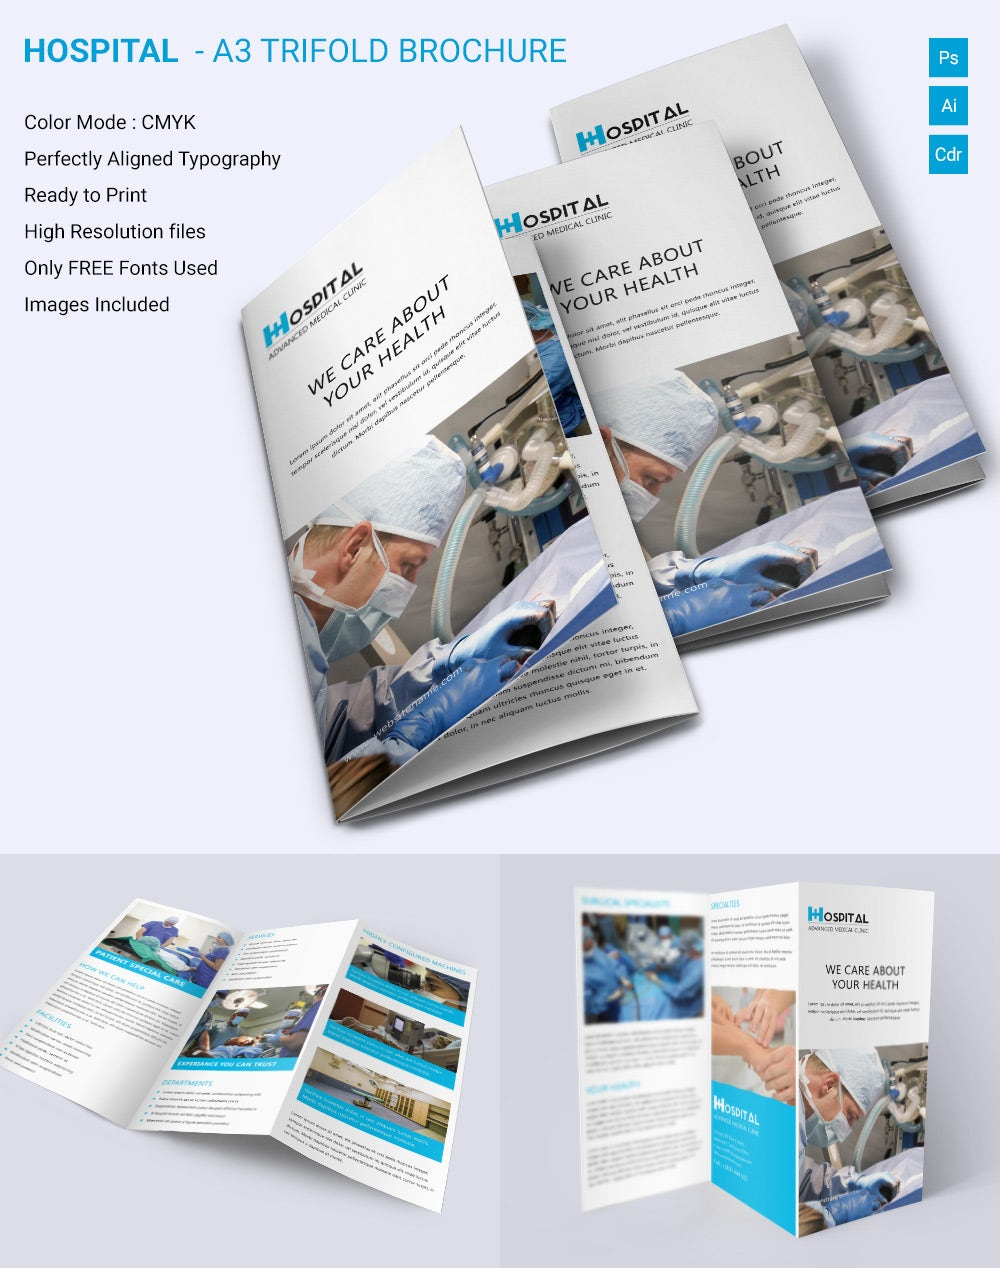 Medical brochure template 39 free psd ai vector eps for Templates for brochures